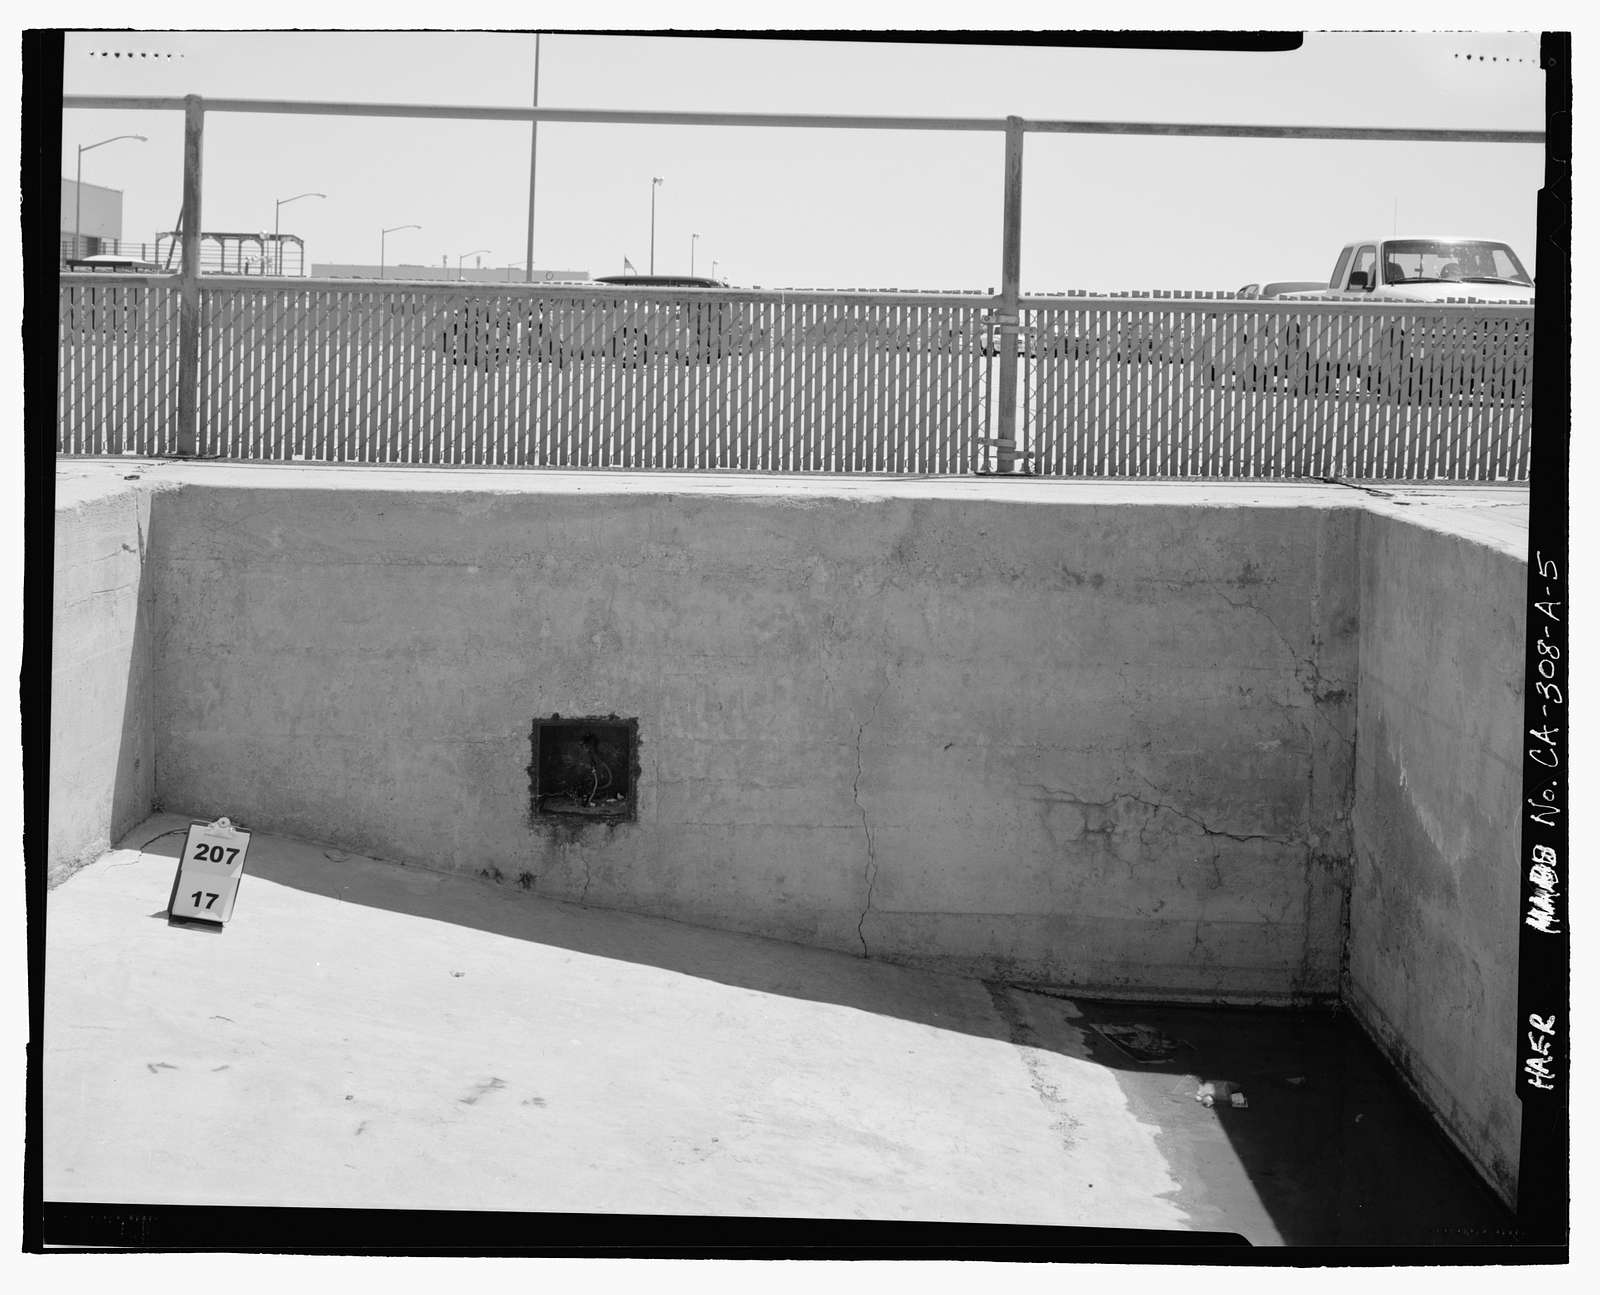 Edwards Air Force Base, South Base, X-1 Loading Pit, Western Shore of Rogers Dry Lake, Boron, Kern County, CA